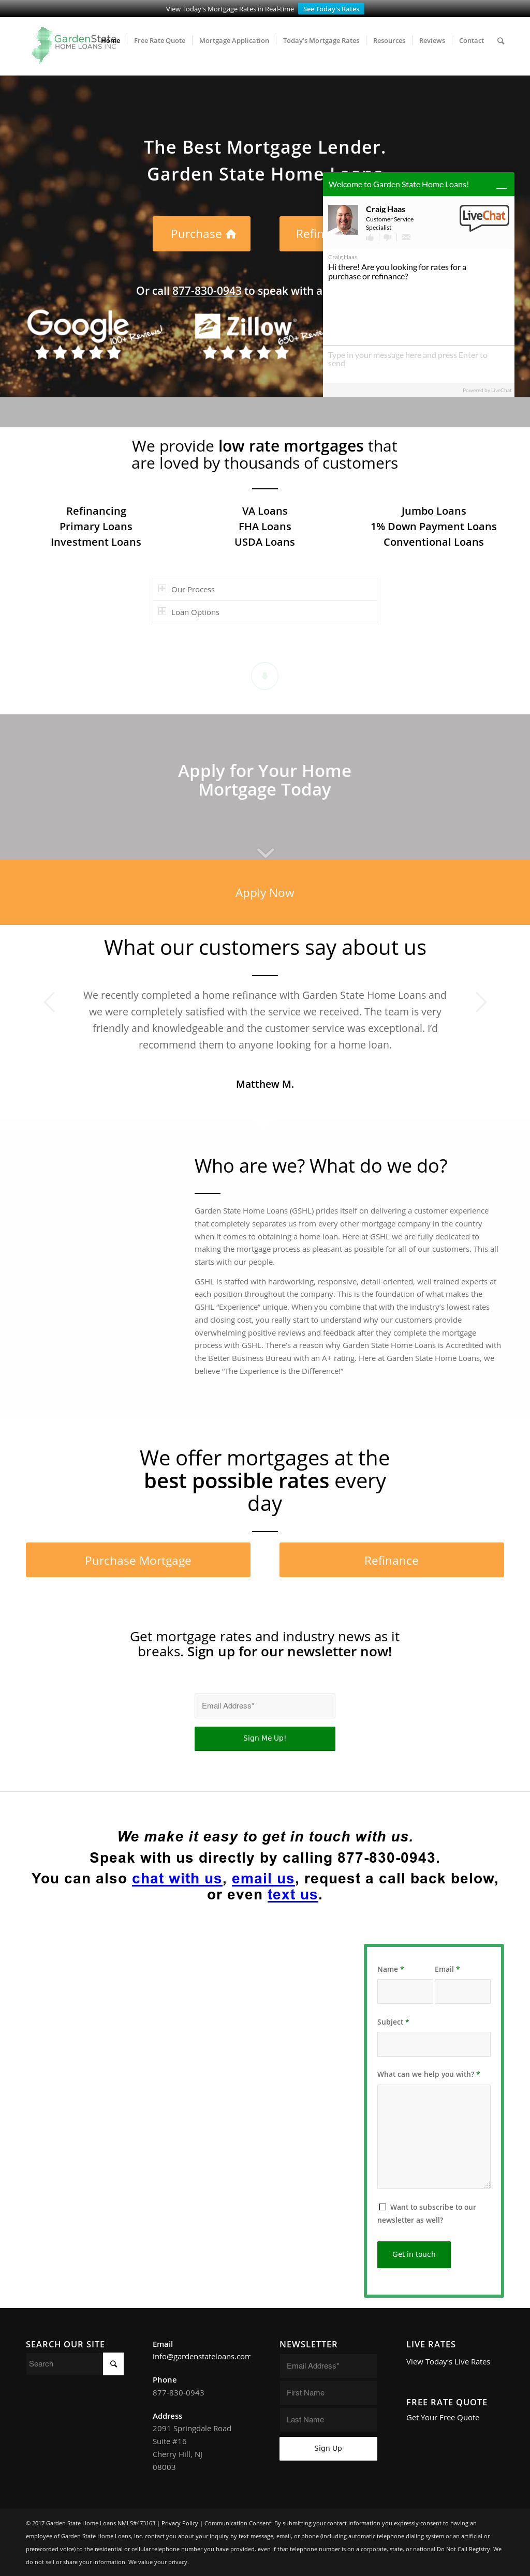 Garden State Home Loans Website History